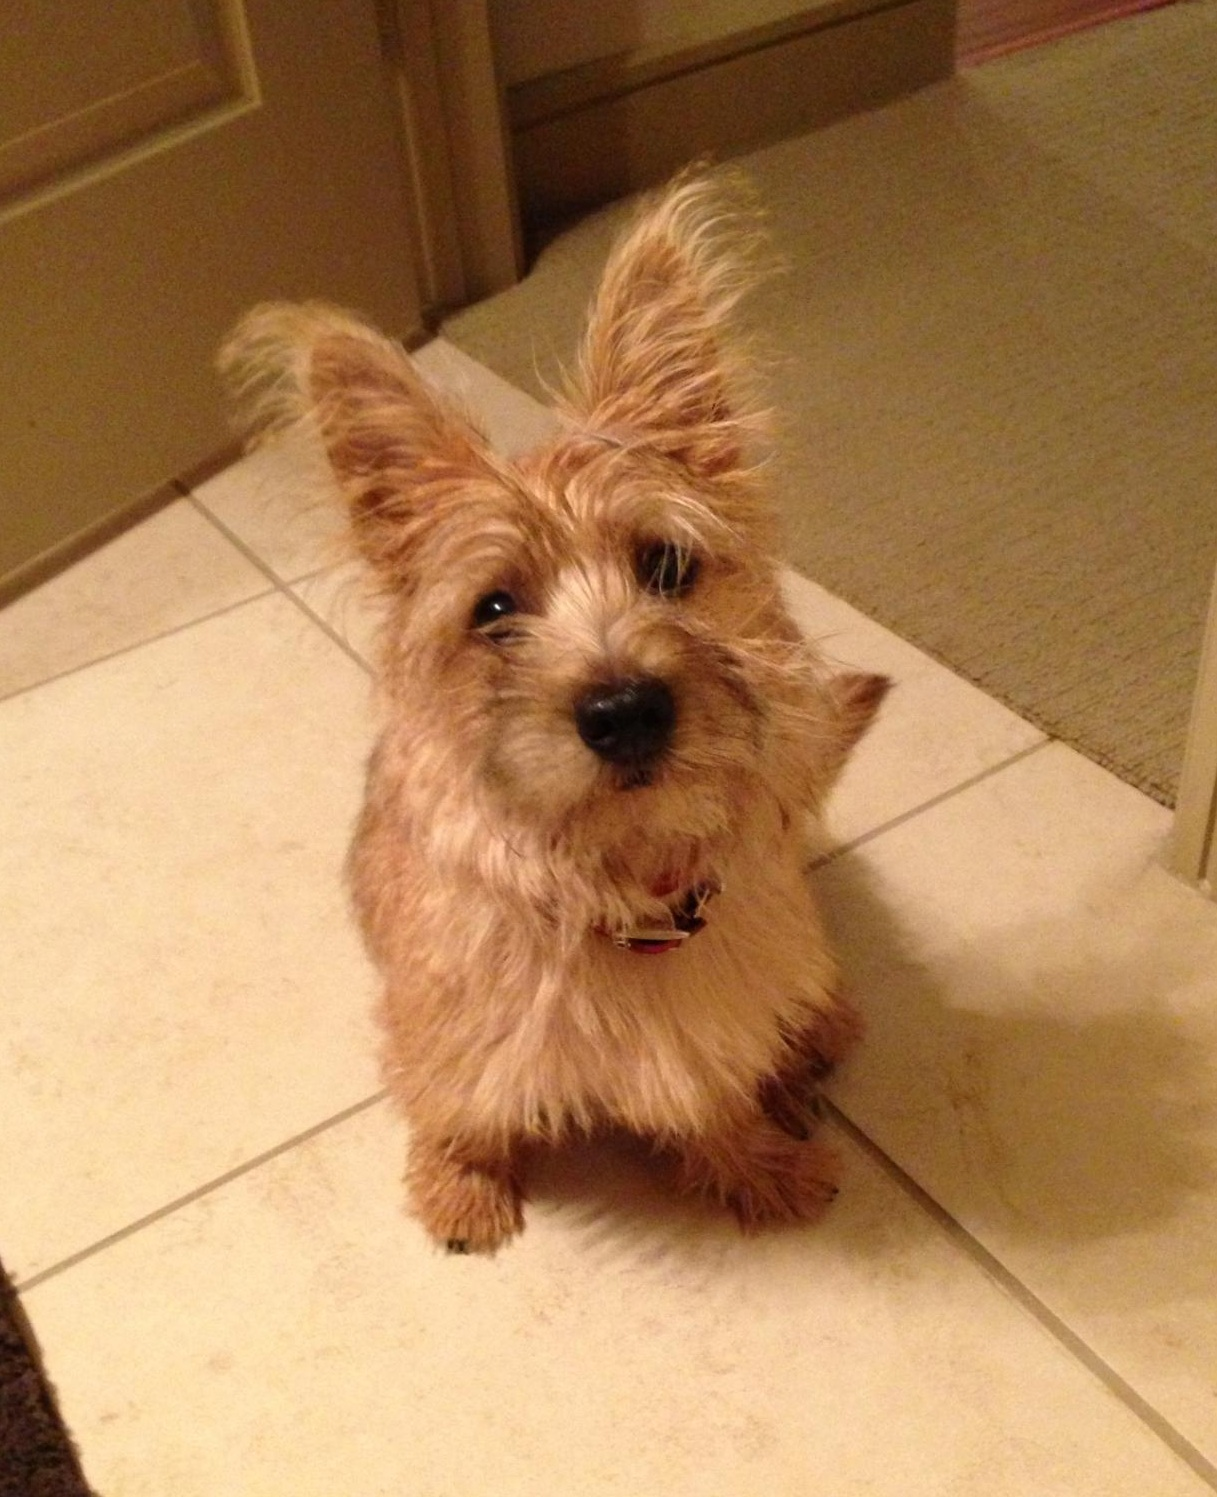 File:Cairn Terrier Puppy jpg - Wikimedia Commons